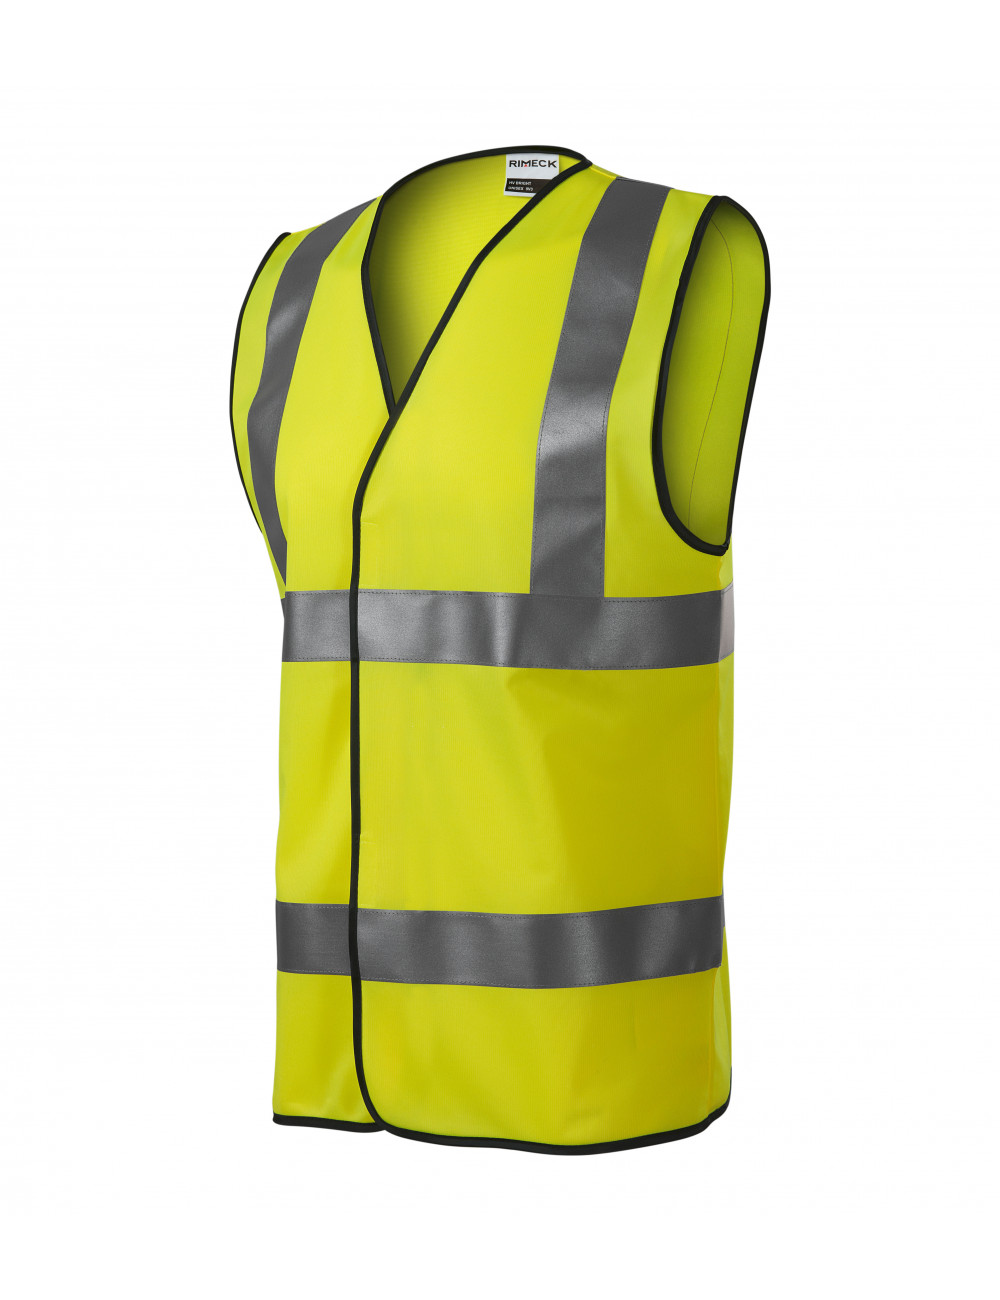 A high-visibility vest is part of your workwear